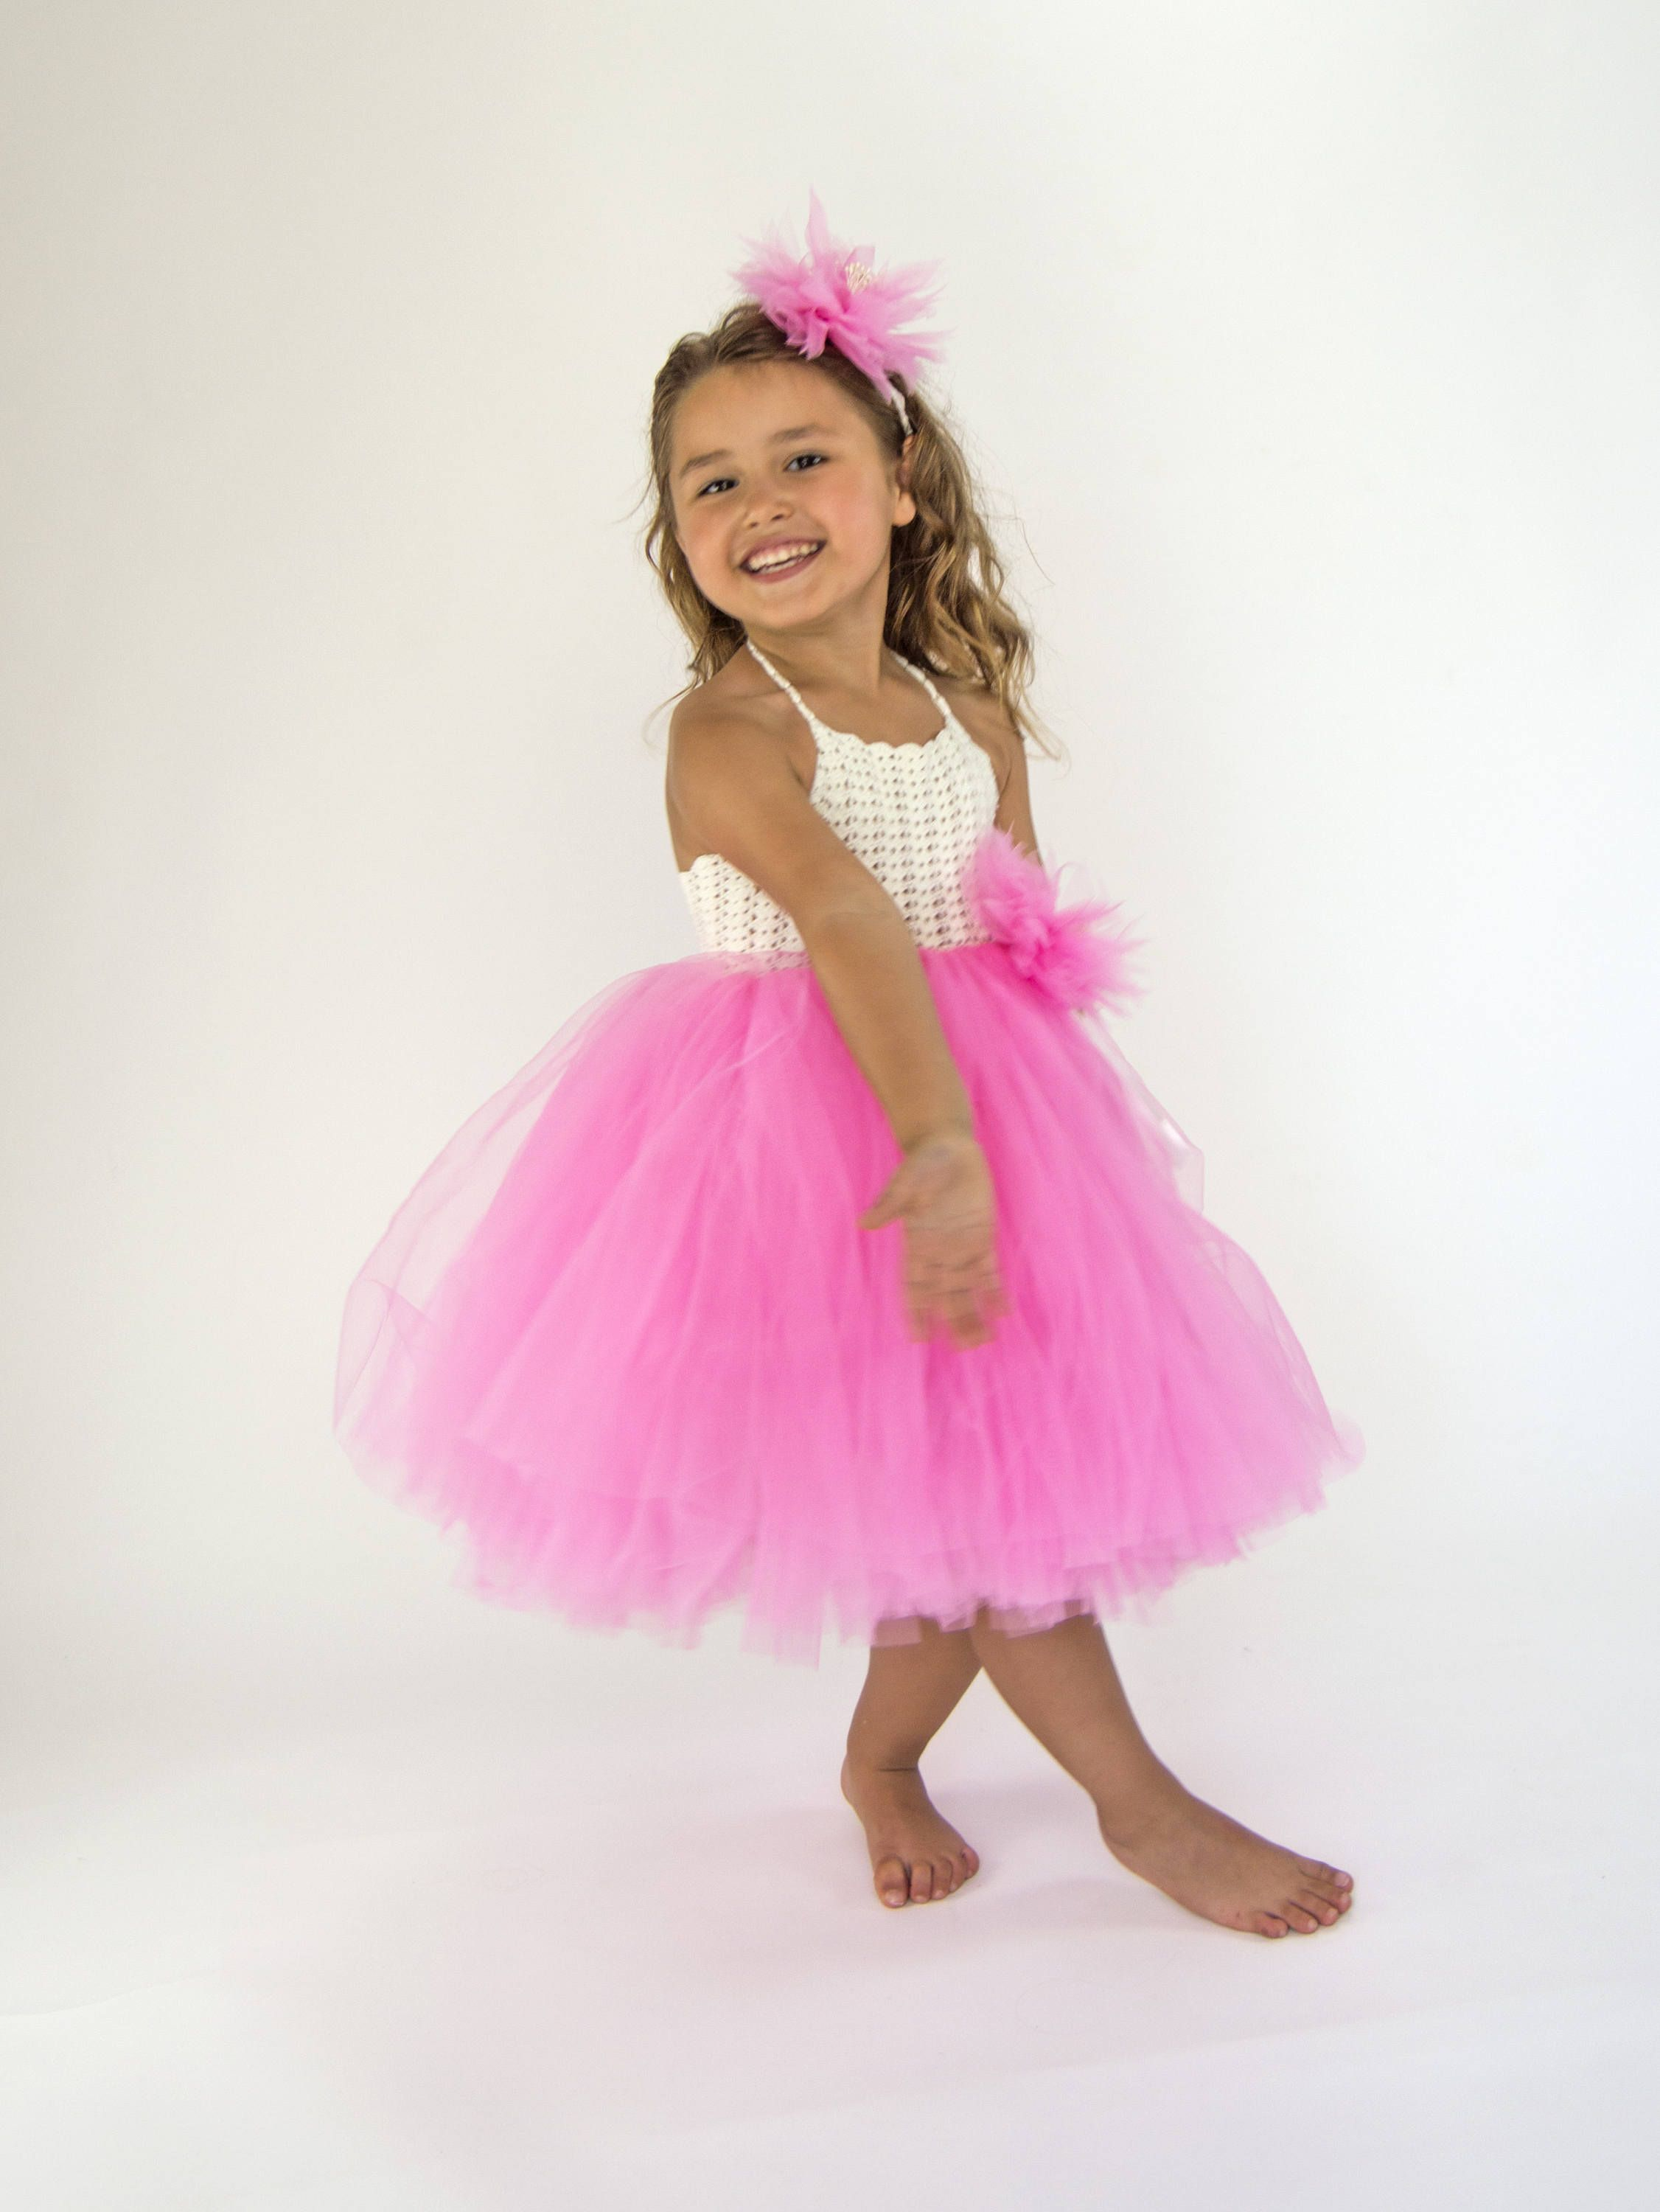 Ivory and Pınk Girl Tutu Dress.Flower Girl Tulle Dress with Lace ...